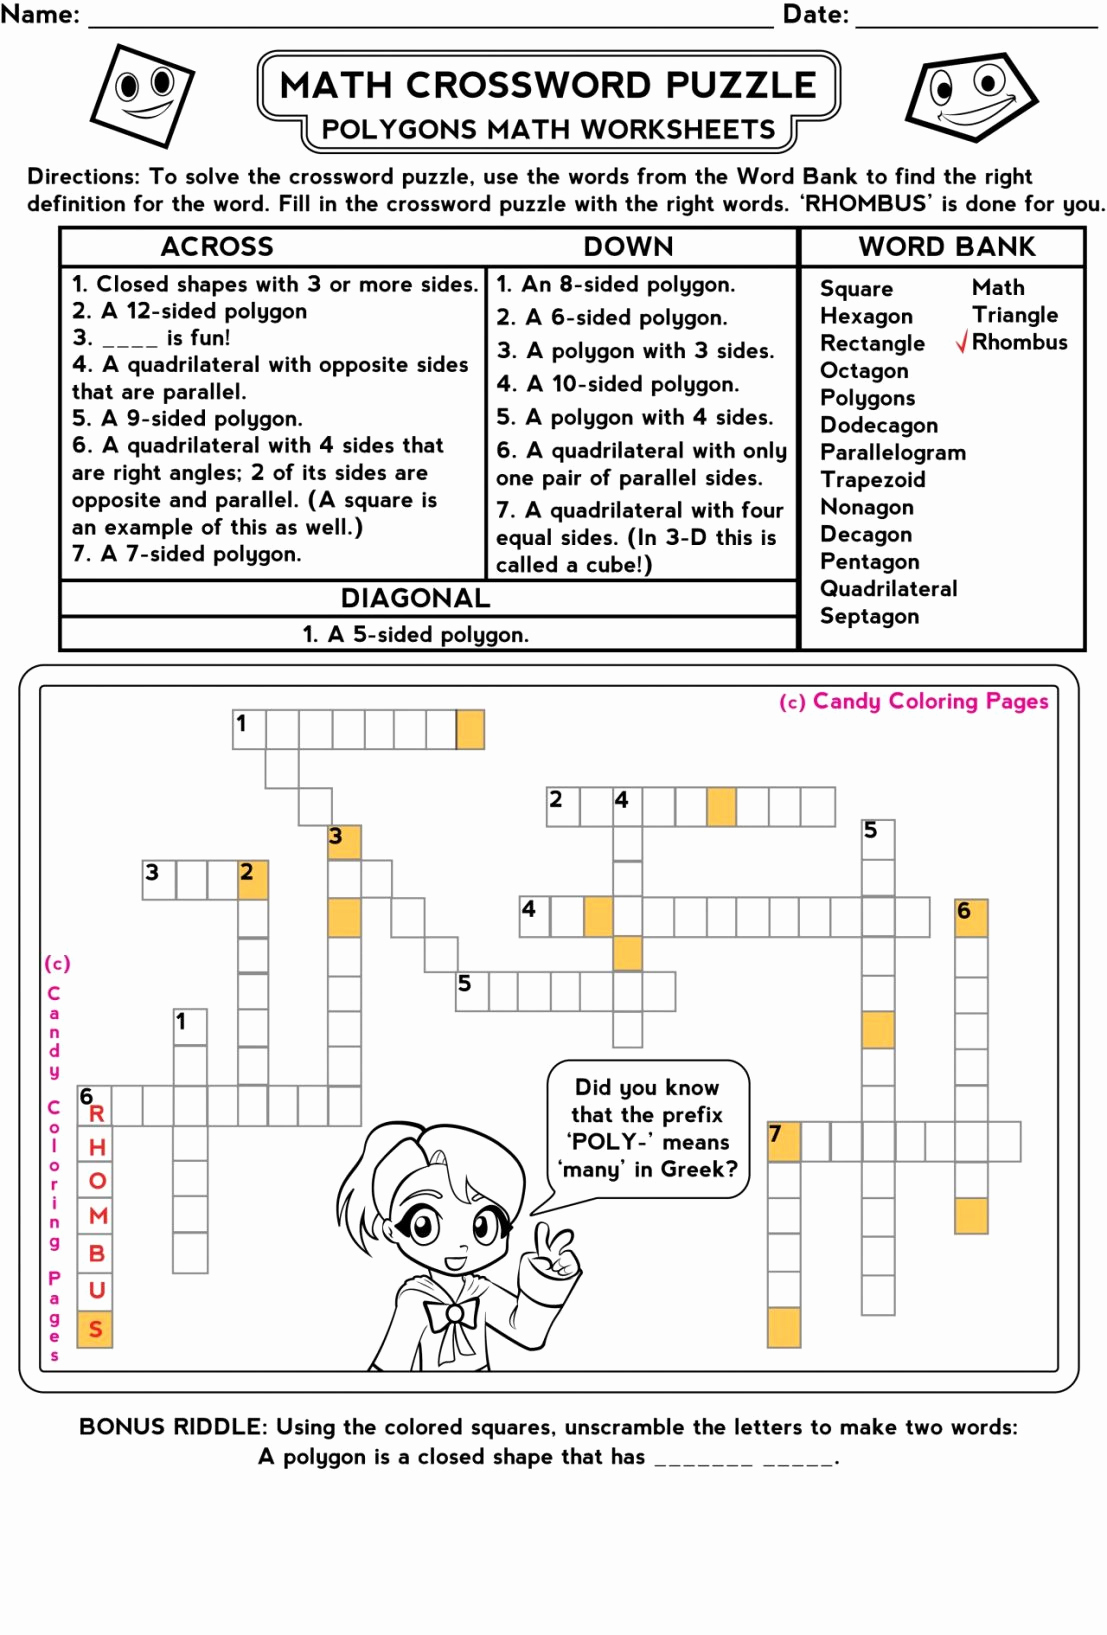 4Th Grade Math Riddles Best Of Magic Square Worksheets - Crossword Puzzle Printable 3Rd Grade